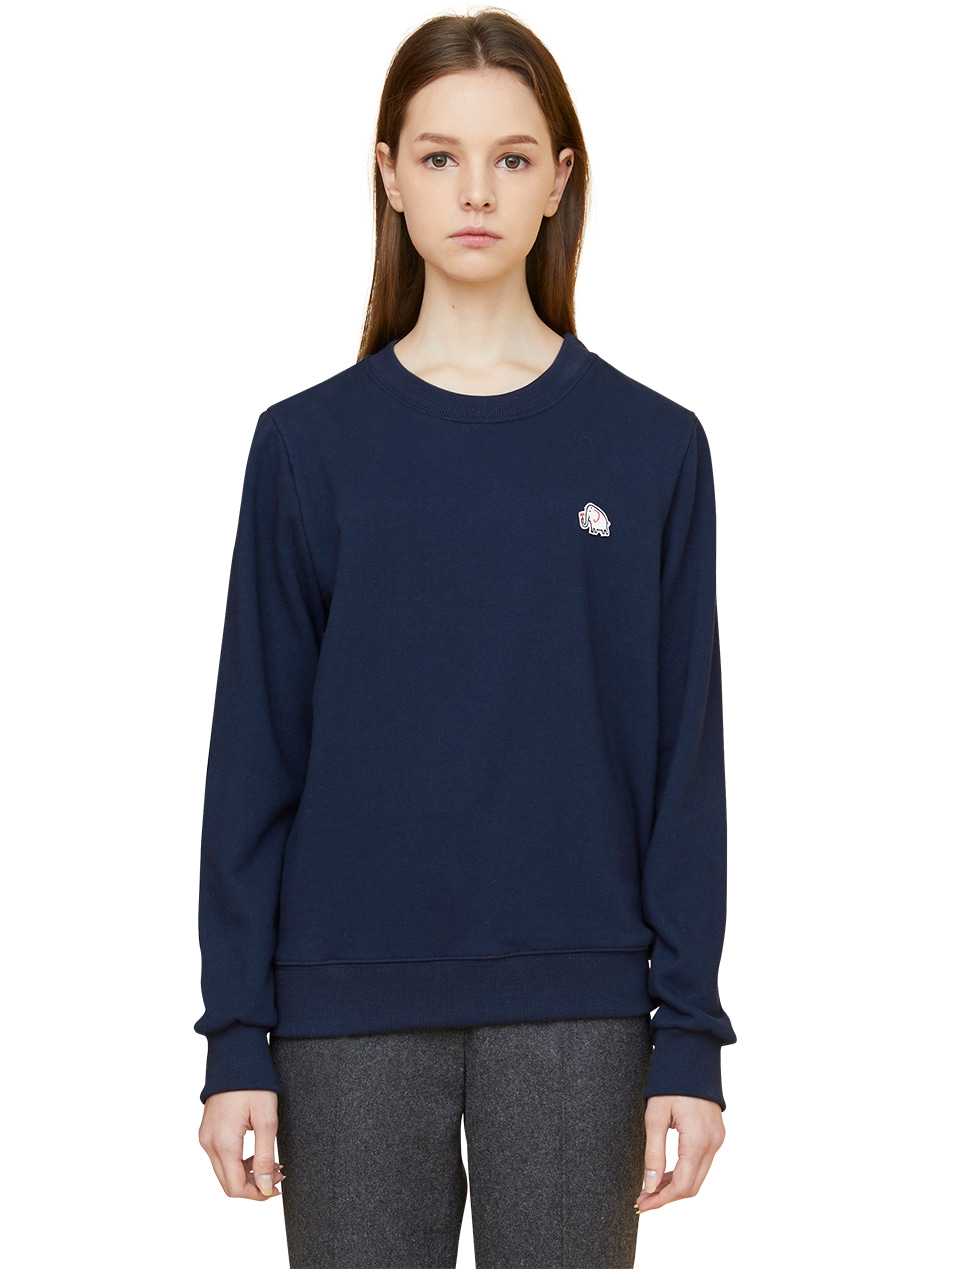 elephant patch sweatshirts - navy